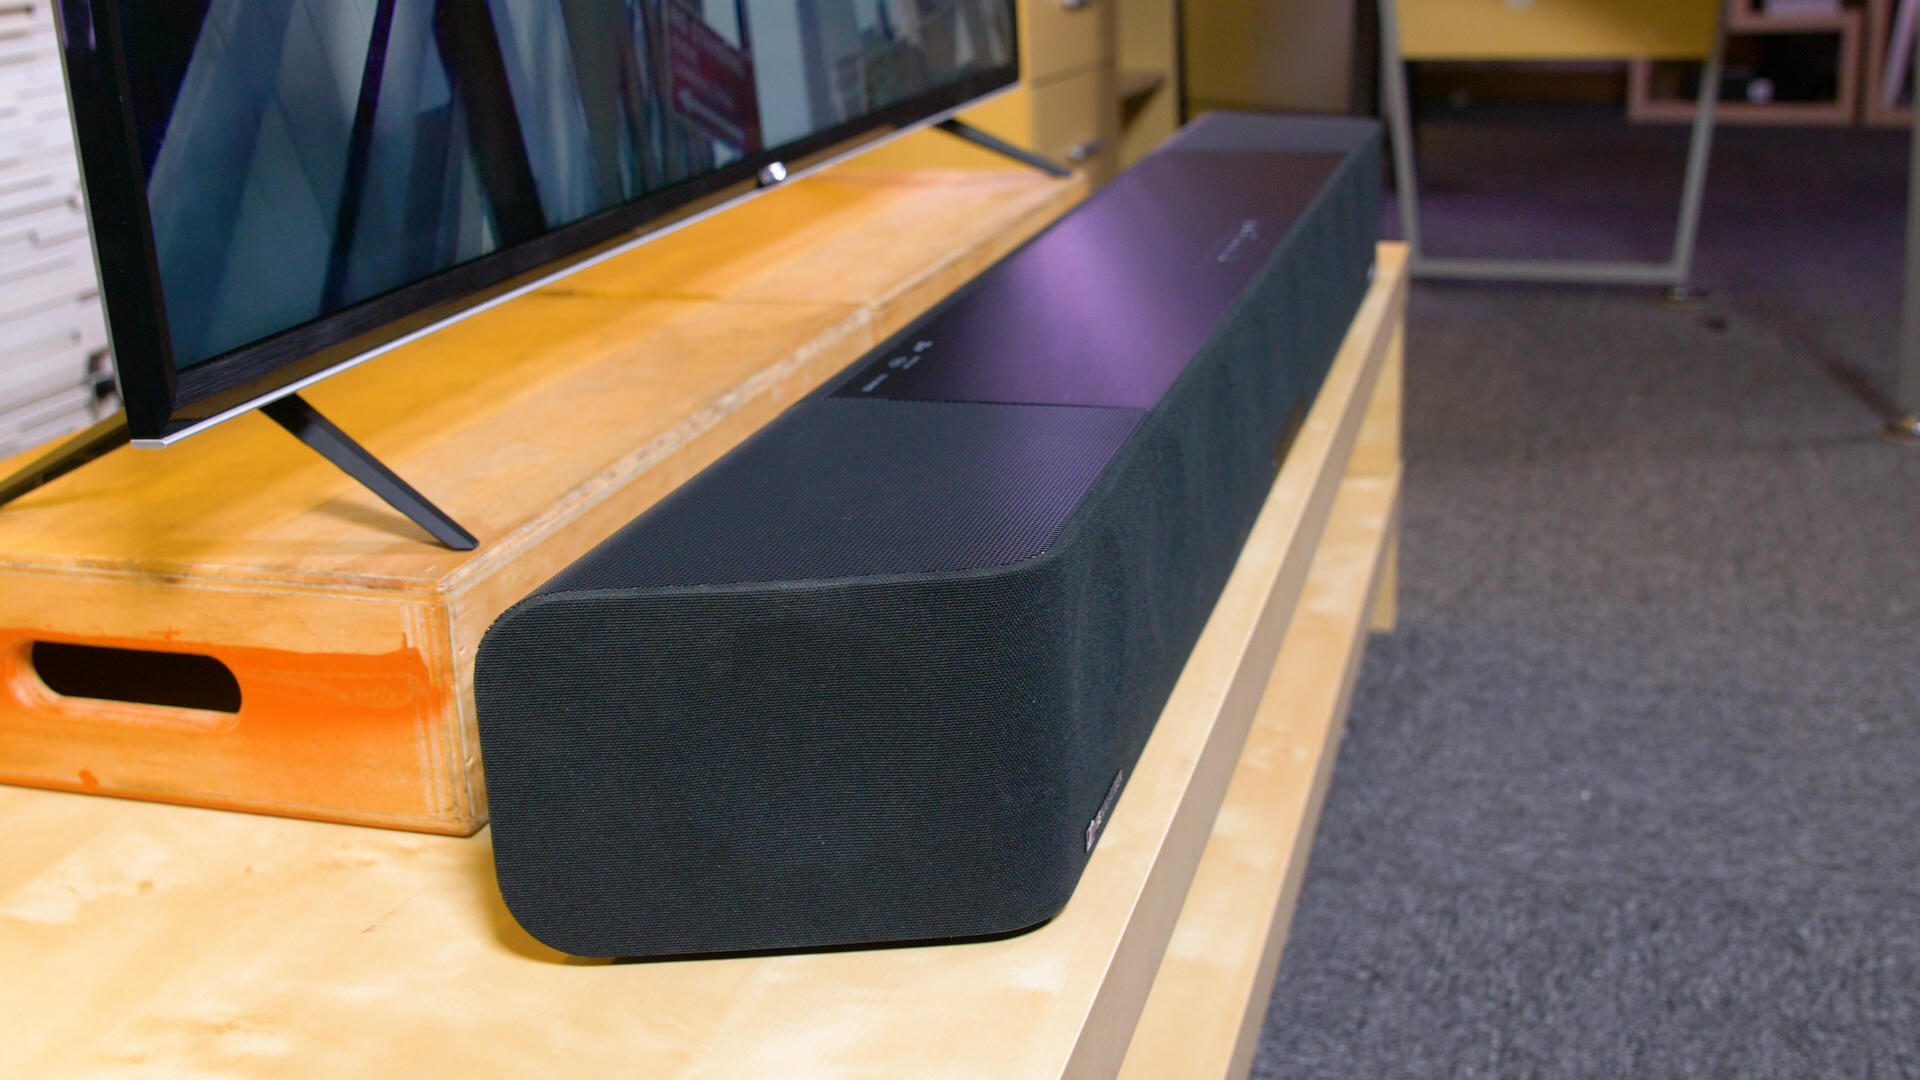 Video: Sennheiser Ambeo Soundbar has the best Atmos sound from a single box